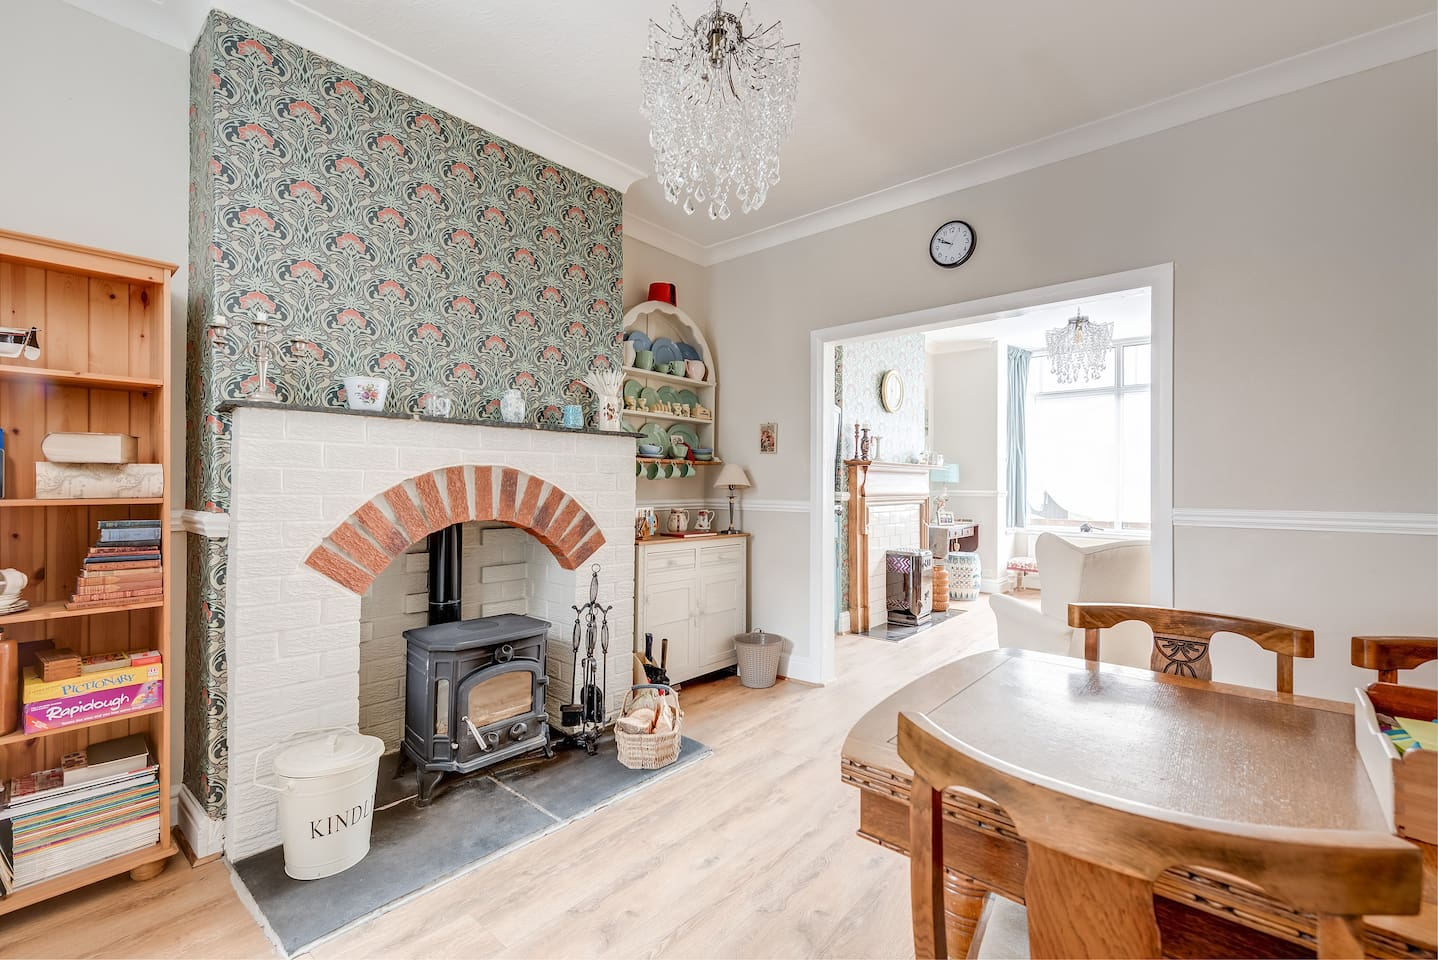 Spacious through dining room with wood burner.